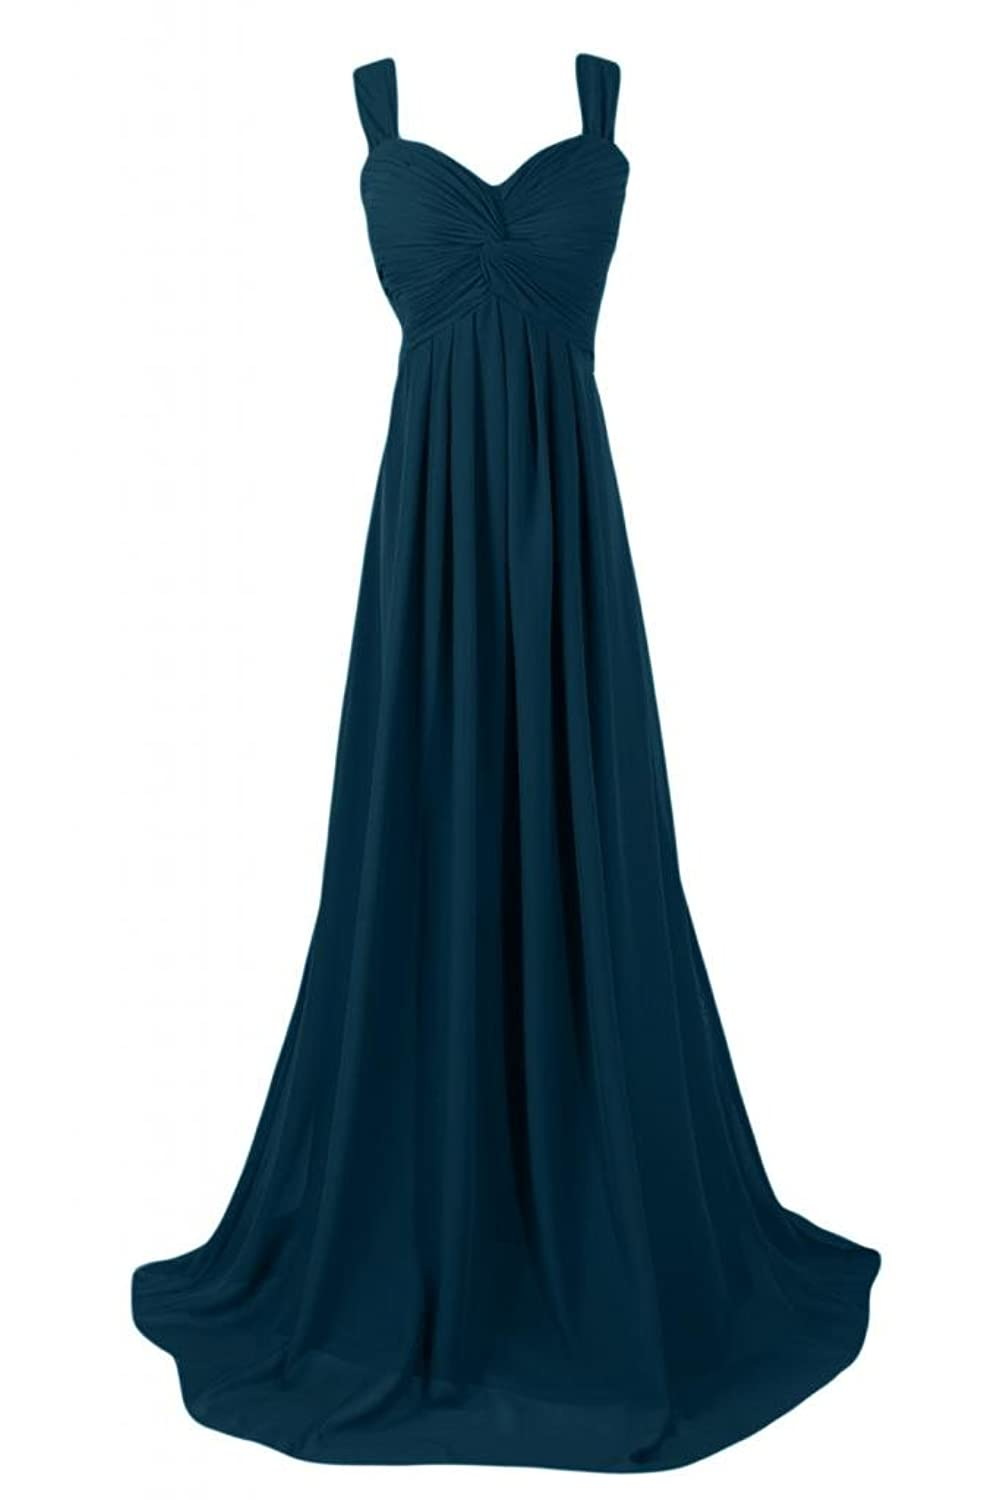 Sunvary Graceful Empire Style Bridesmaid Dress Maxi Party Dresses for Women Pageant Gowns